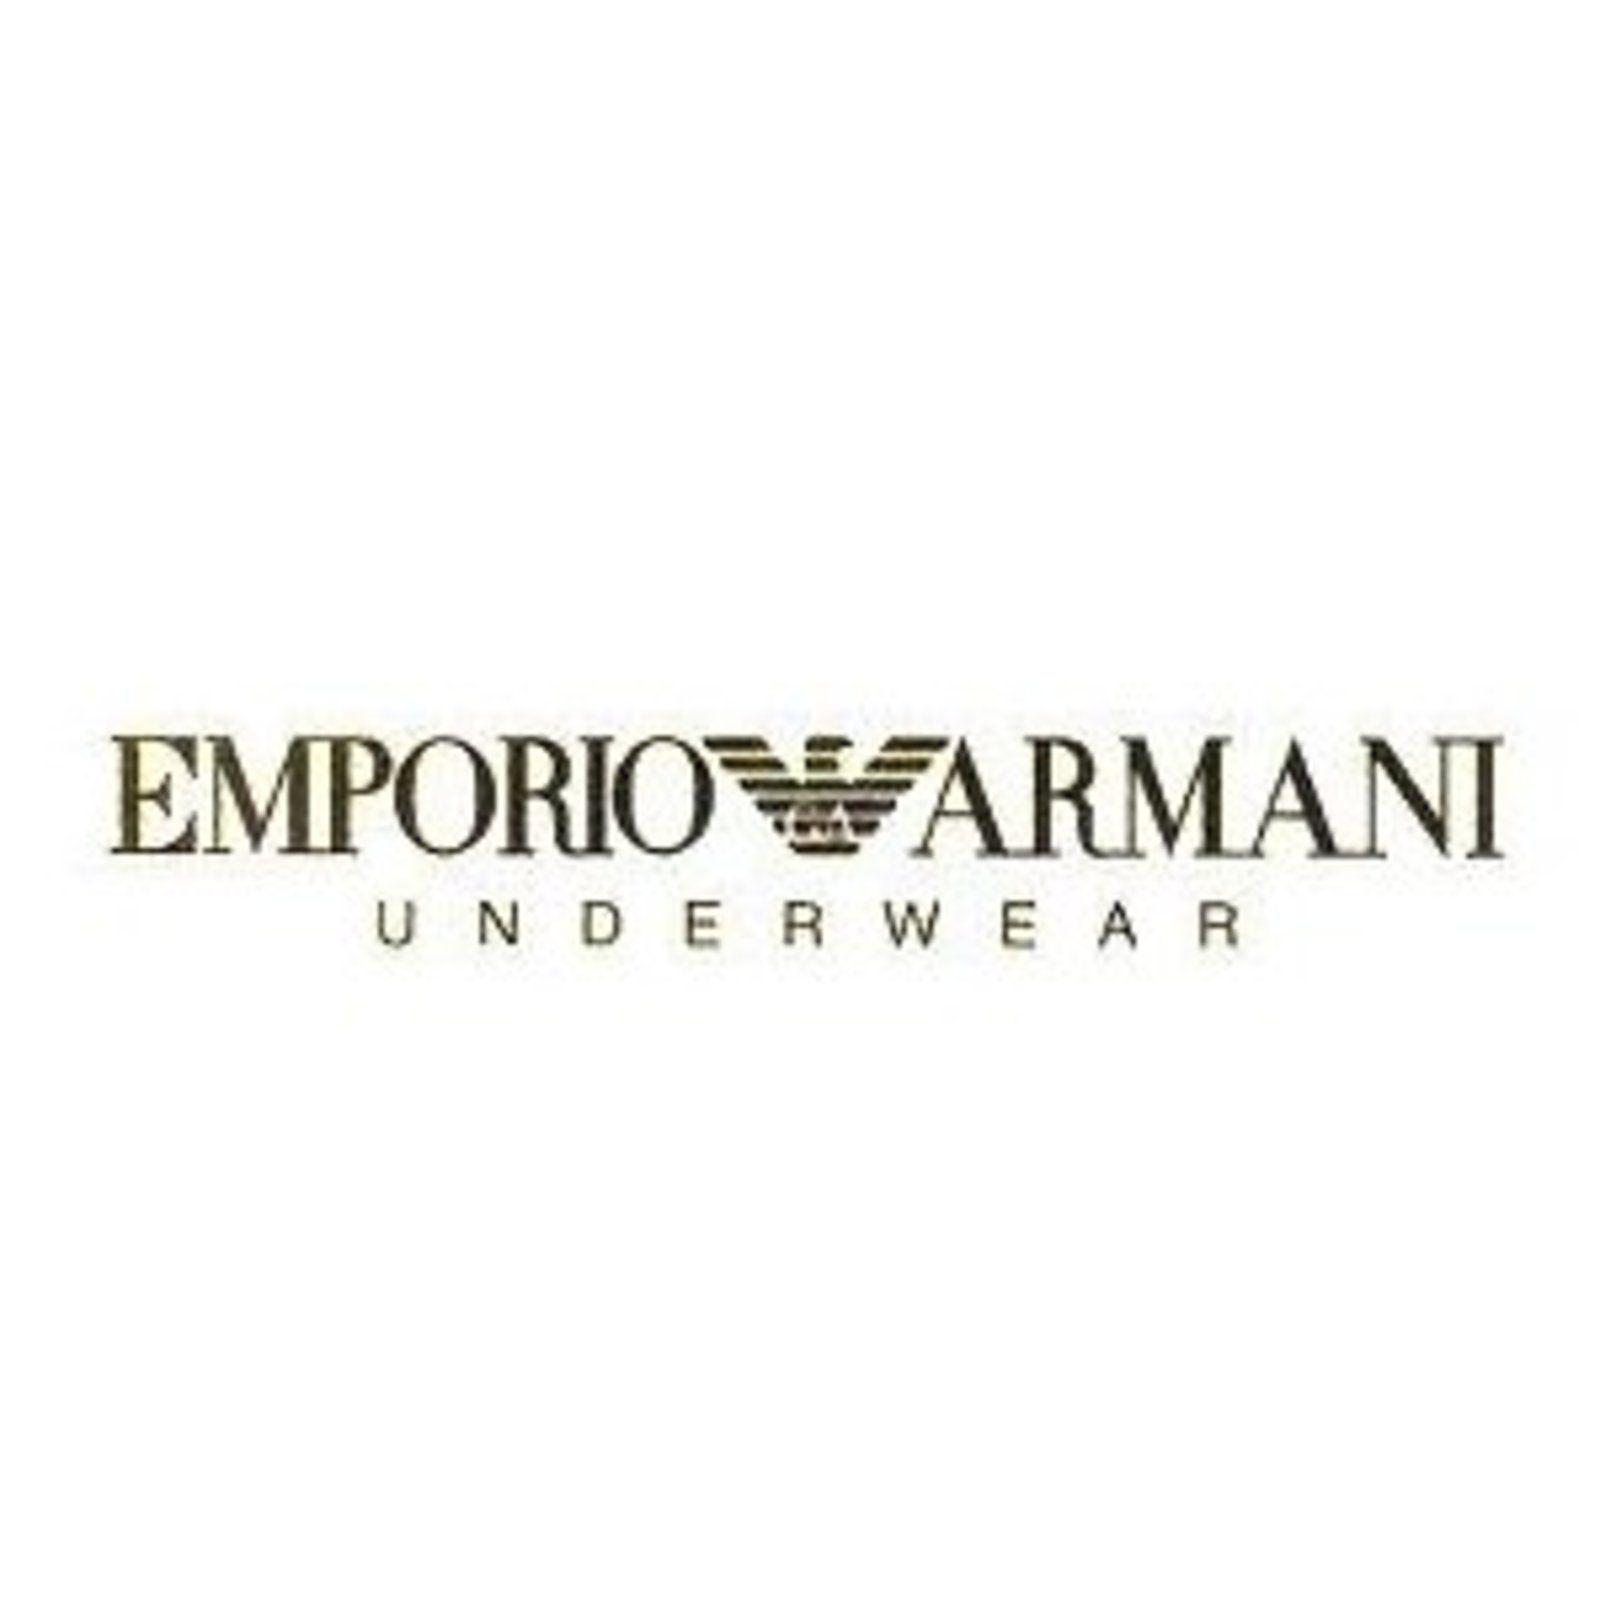 Under Wear Emporio Armani boxer shorts at Togged Clothing